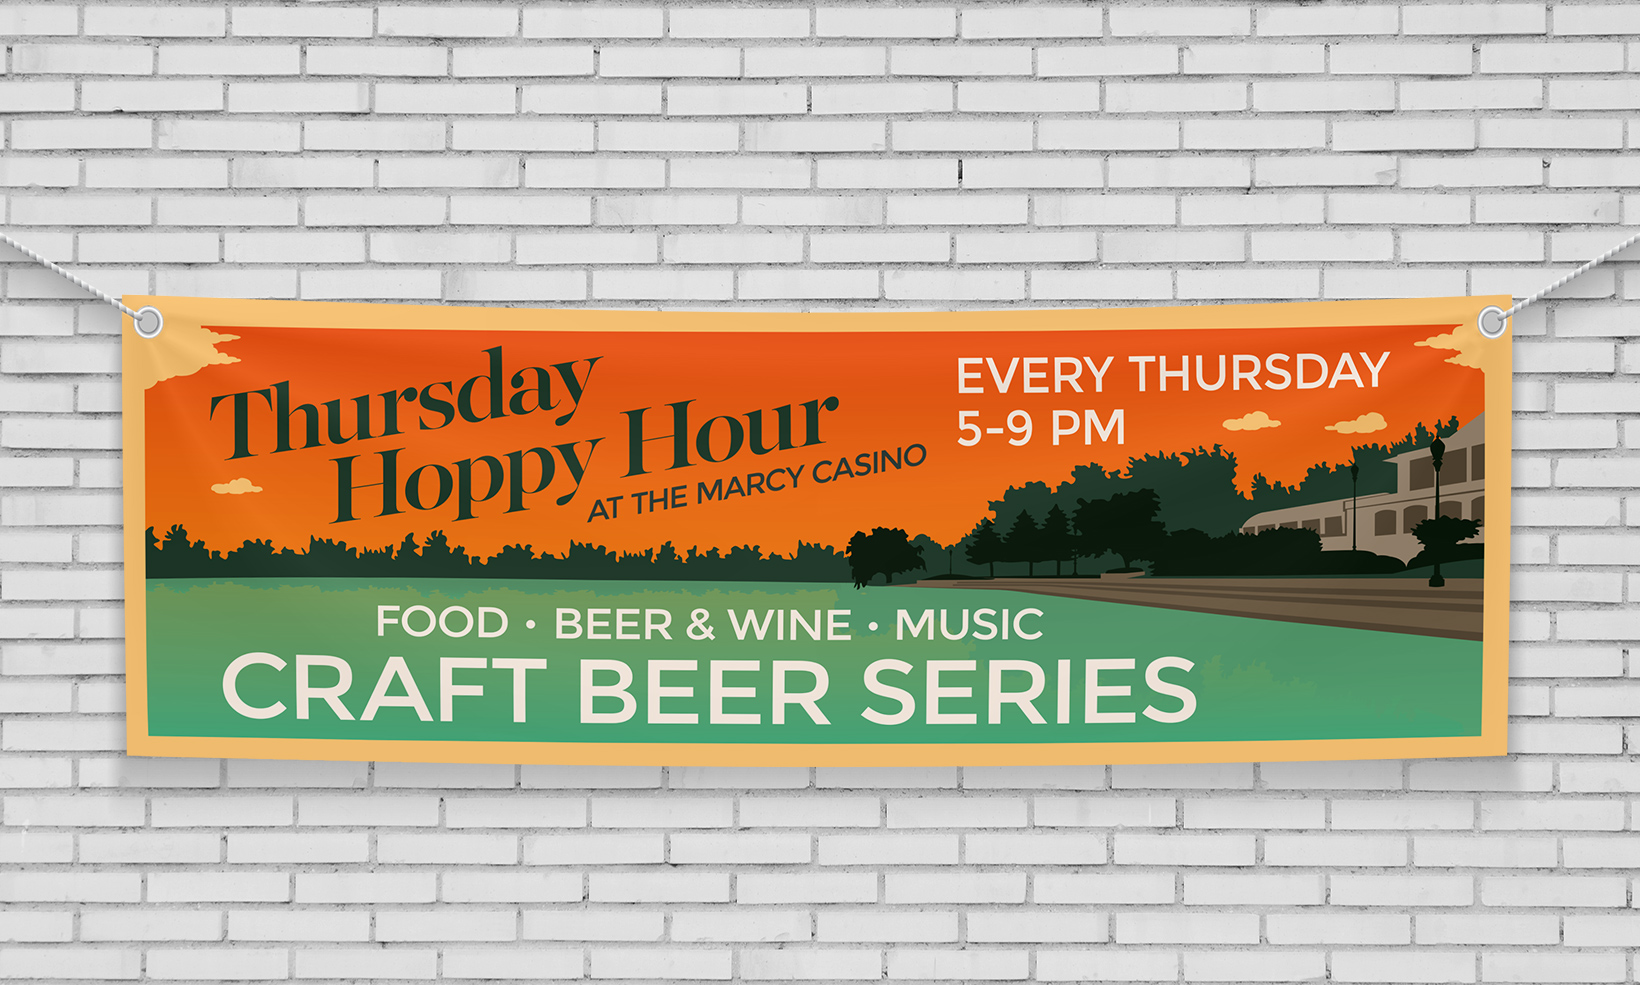 A large hanging vinyl banner advertises the Thursday Hoppy Hour event at the Marcy Casino, featuring a custom illustration of the venue